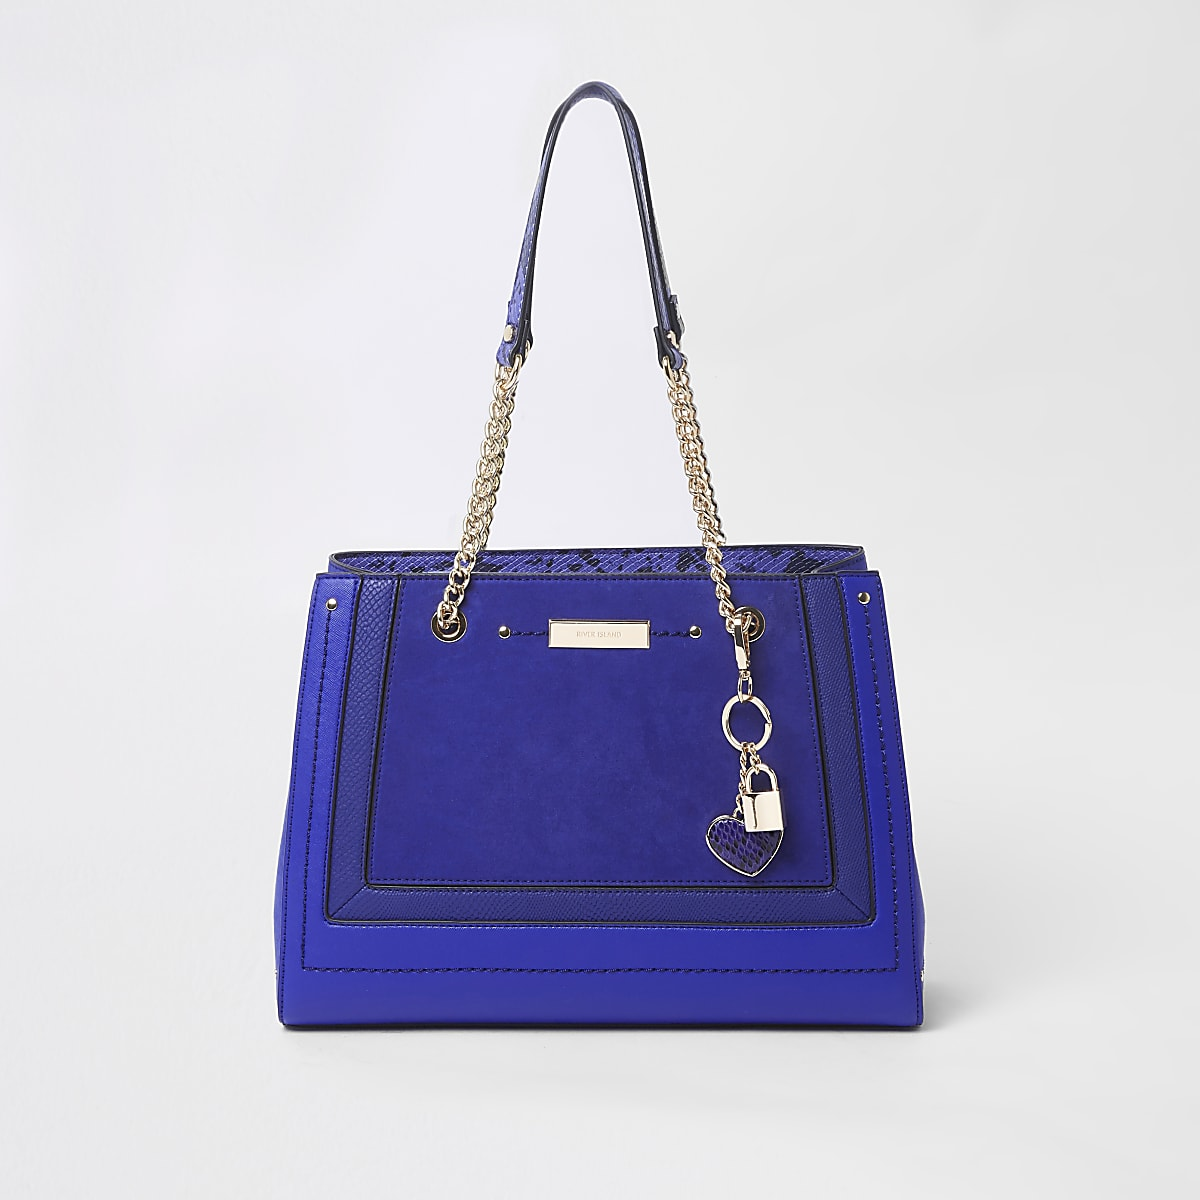 Blue panel charm structured chain tote bag